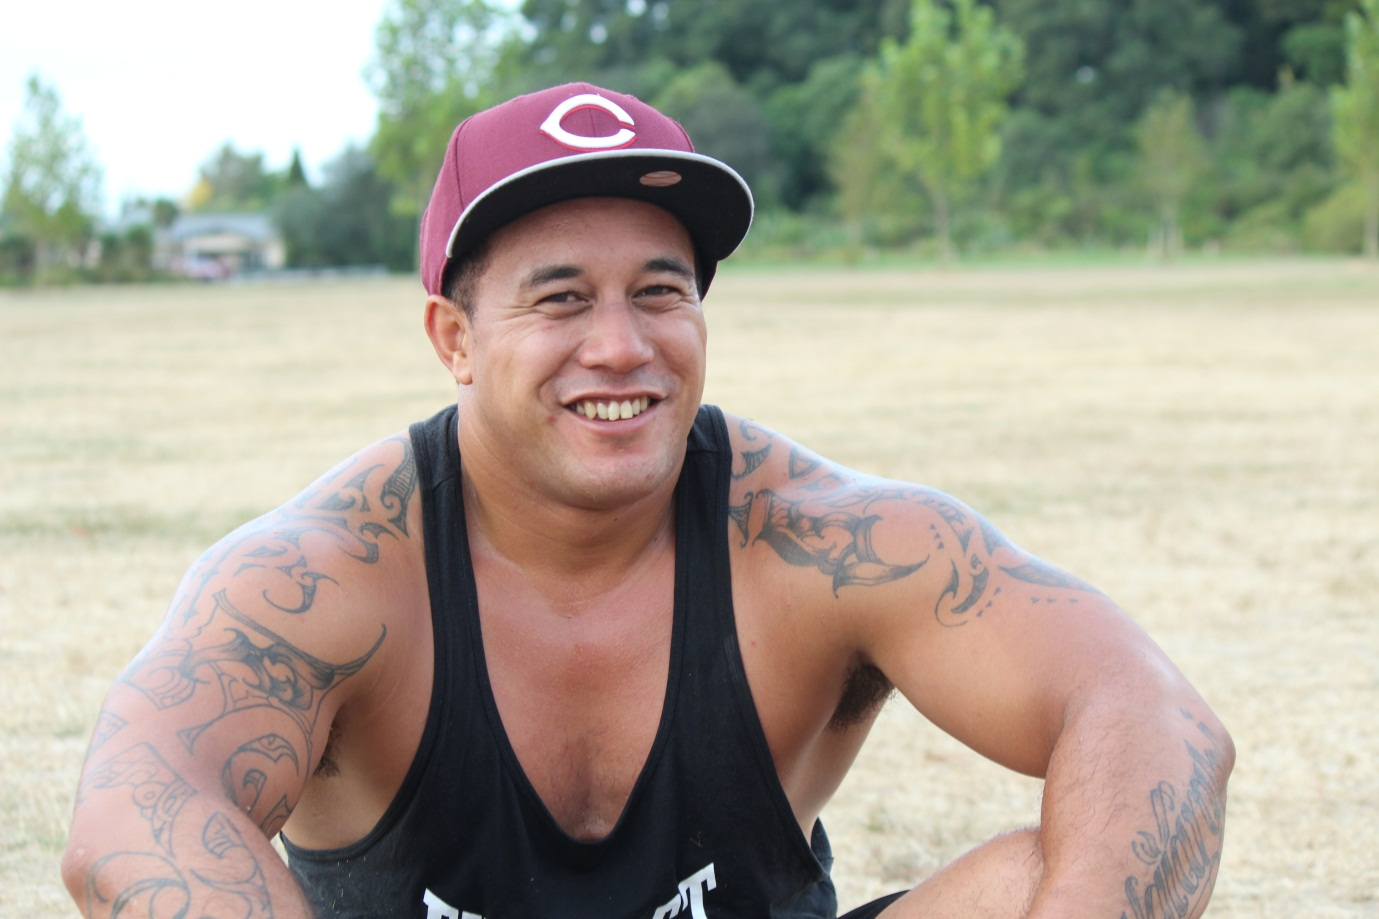 Hemi Quinn believes offering free sessions is a step towards improving Māori health. Photo: Donna-Lee Biddle